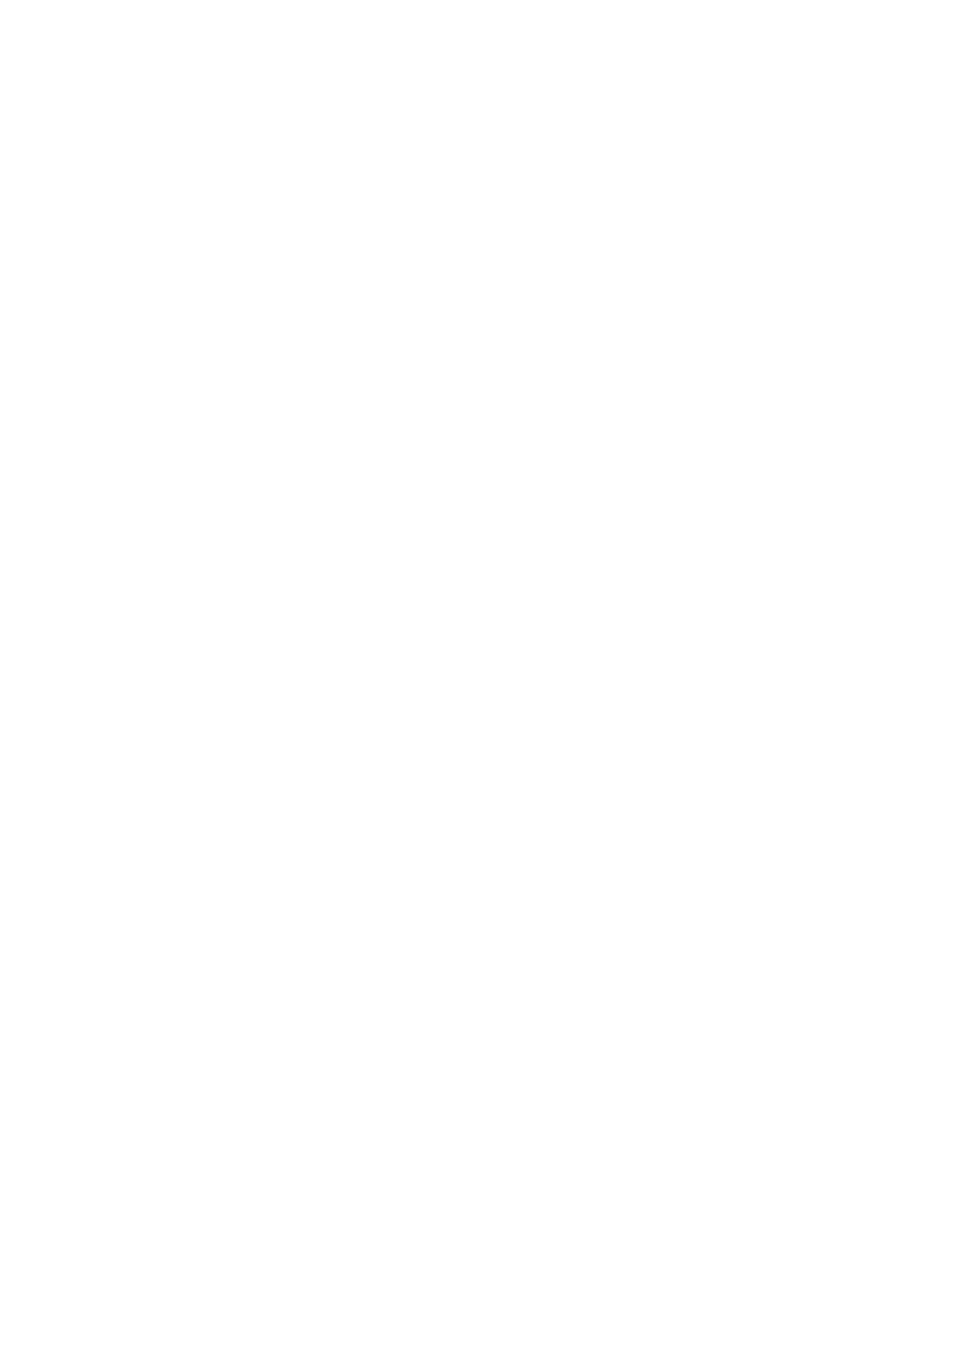 motorola minitor v user manual page 14 17 original mode rh manualsdir com minitor v user manual Minitor V Accessories